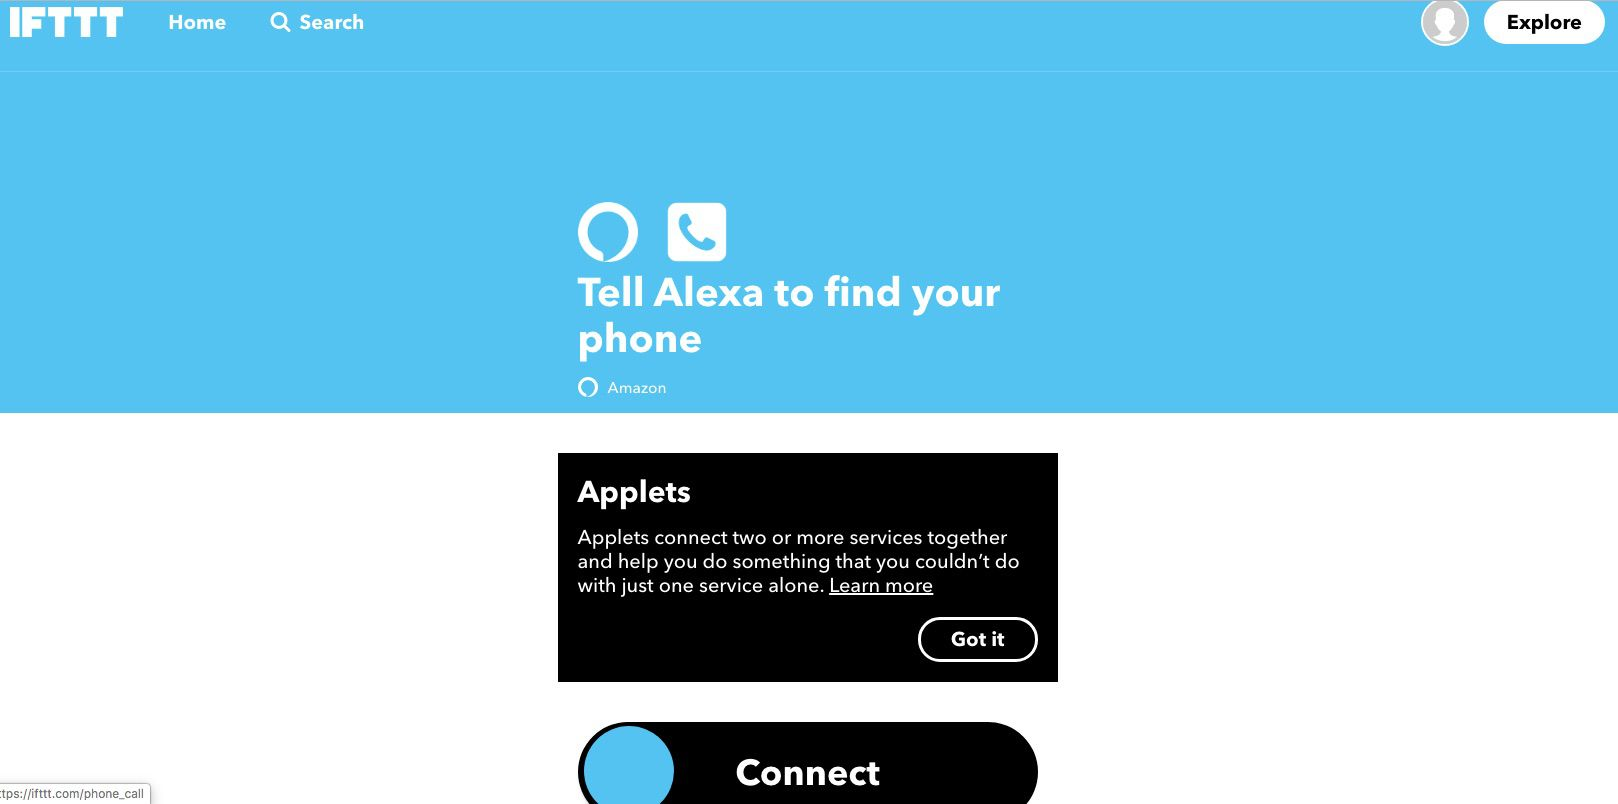 IFTTT applet that tells Alexa to find your phone